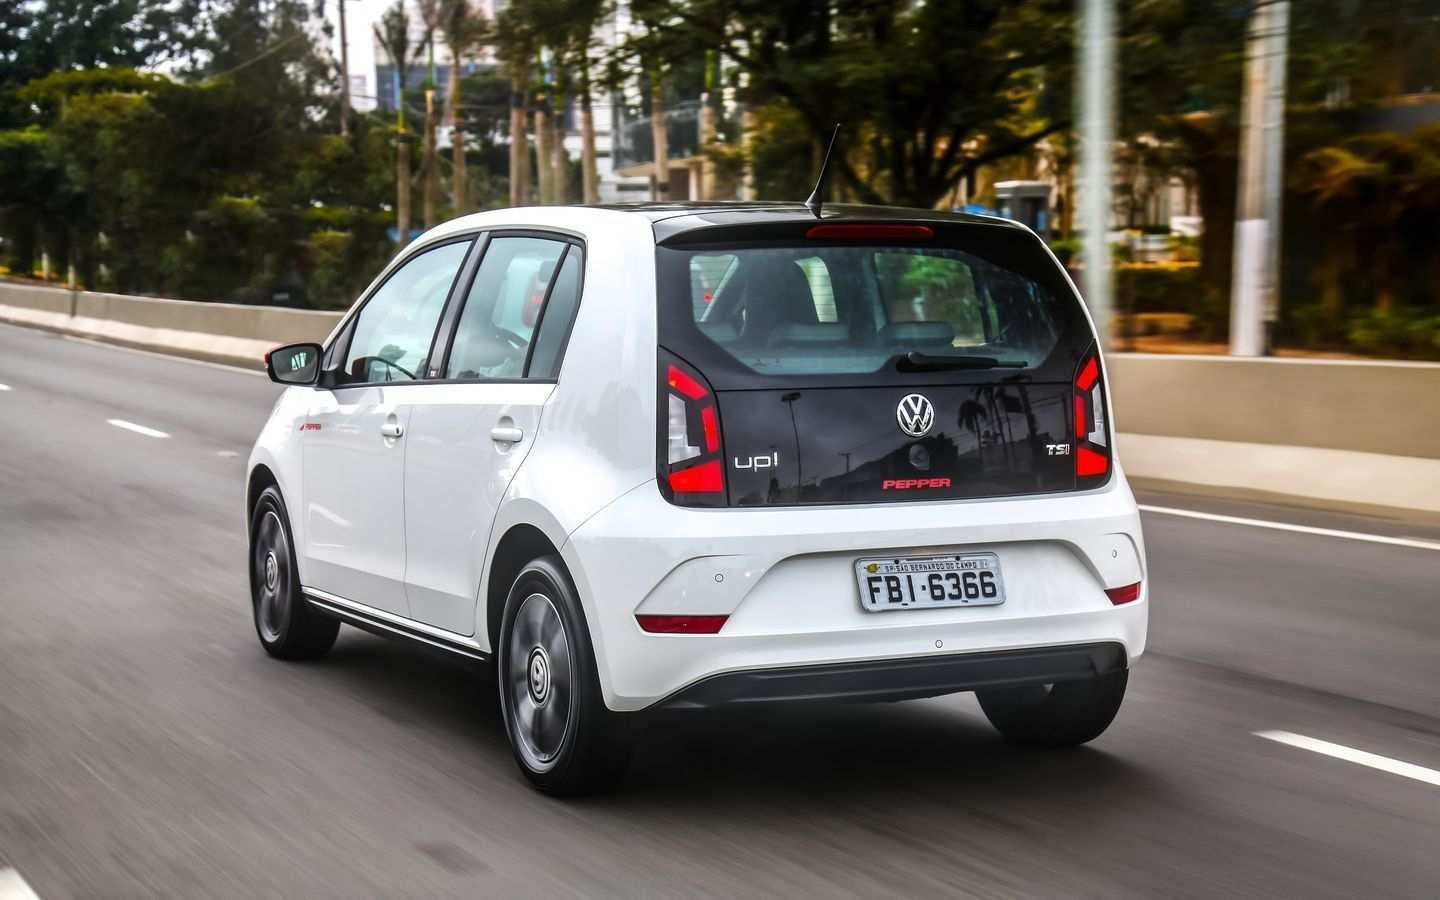 92 All New Best Volkswagen Up Pepper 2019 Redesign Price And Review First Drive with Best Volkswagen Up Pepper 2019 Redesign Price And Review